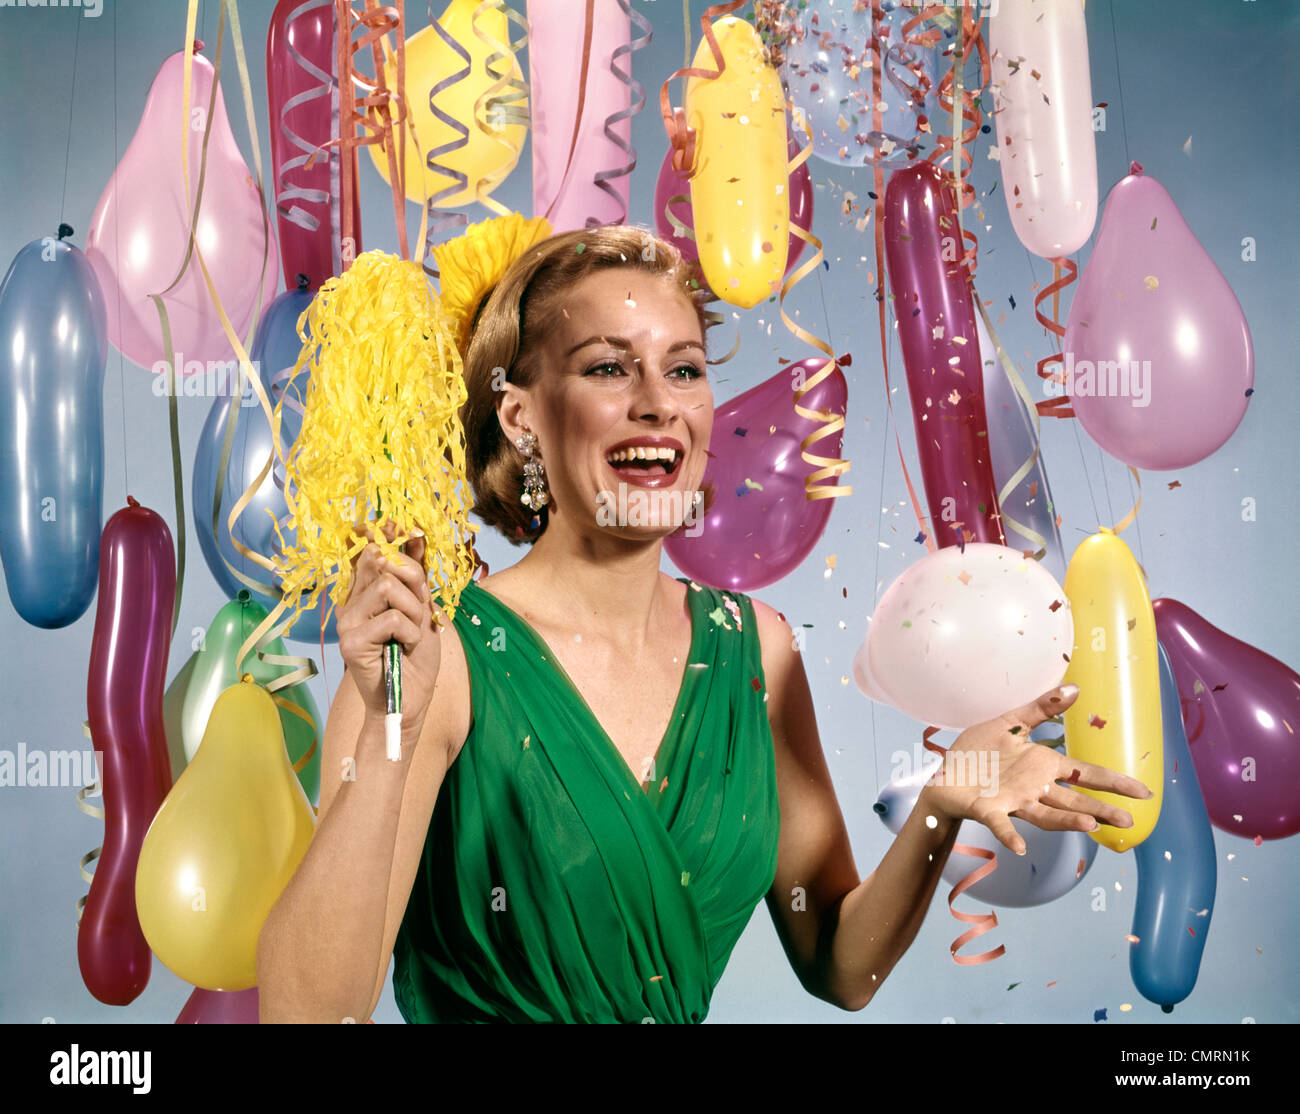 1960 1960 RETRO PARTY NOUVEL AN FEMME ROBE BALLONS BANDEROLES HEUREUX Photo Stock